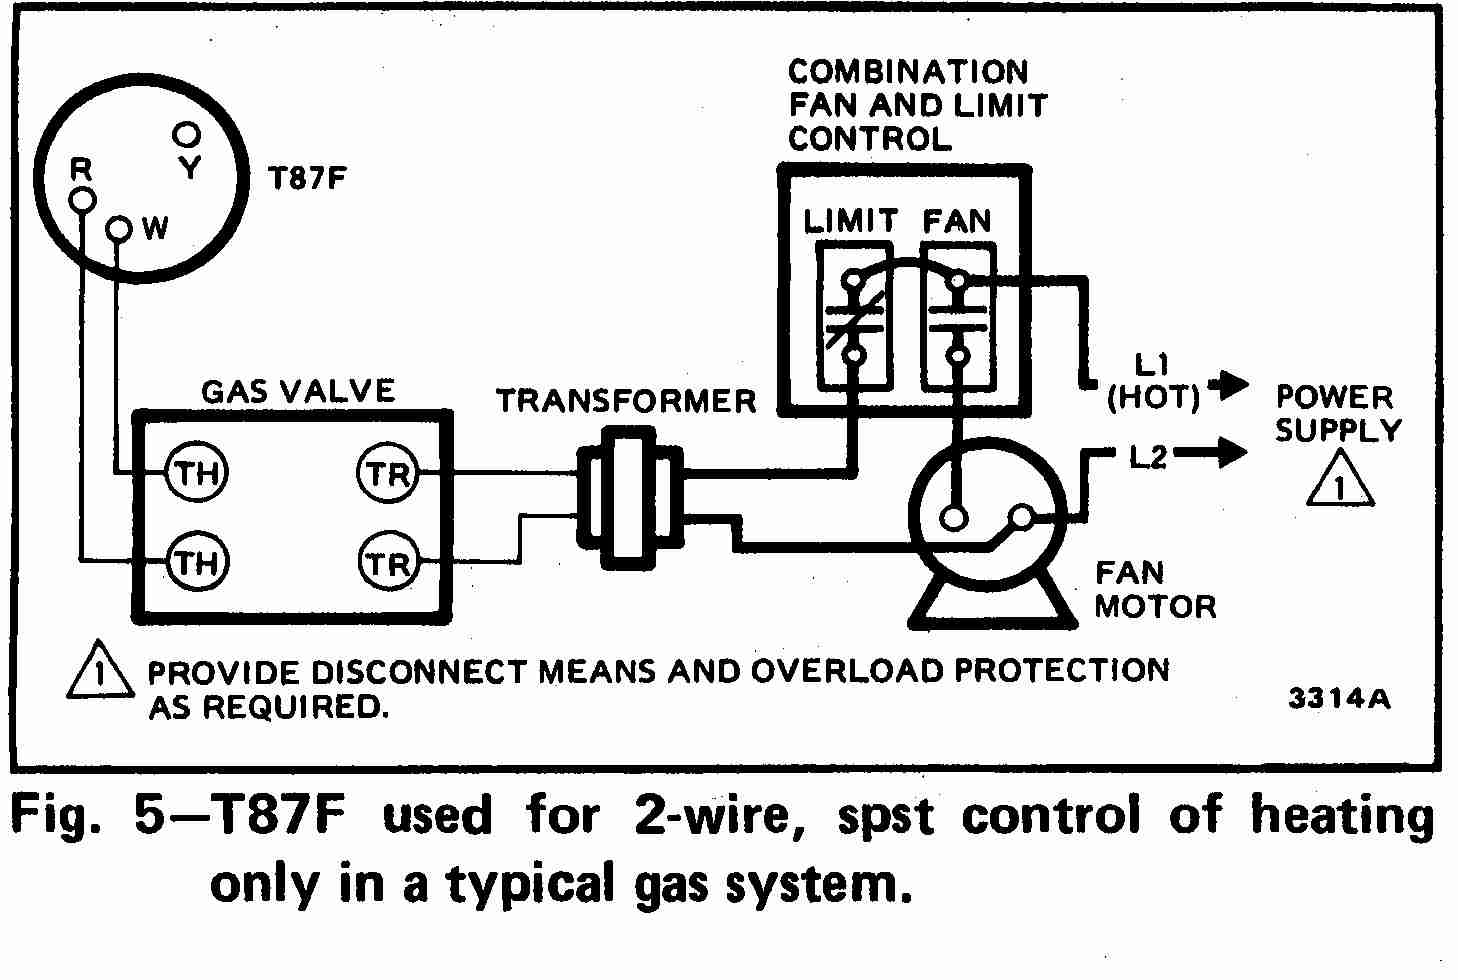 TT_T87F_0002_2Wg_DJF room thermostat wiring diagrams for hvac systems 4 wire thermostat wiring diagram heat only at mifinder.co